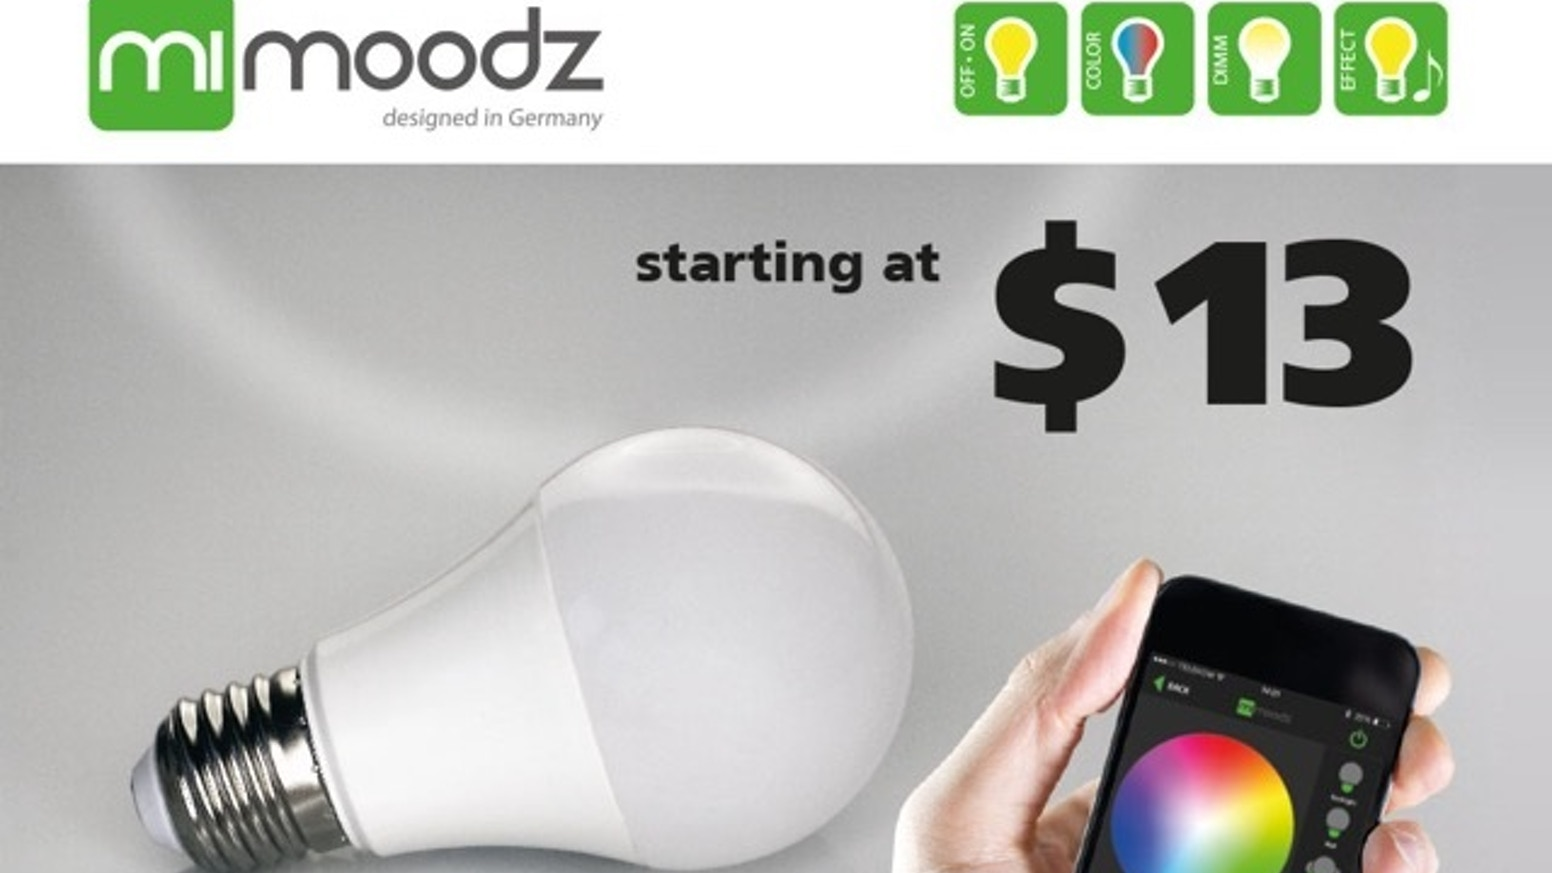 mimoodz is a smart, multi-color LED bulb that you can control with your smartphone.